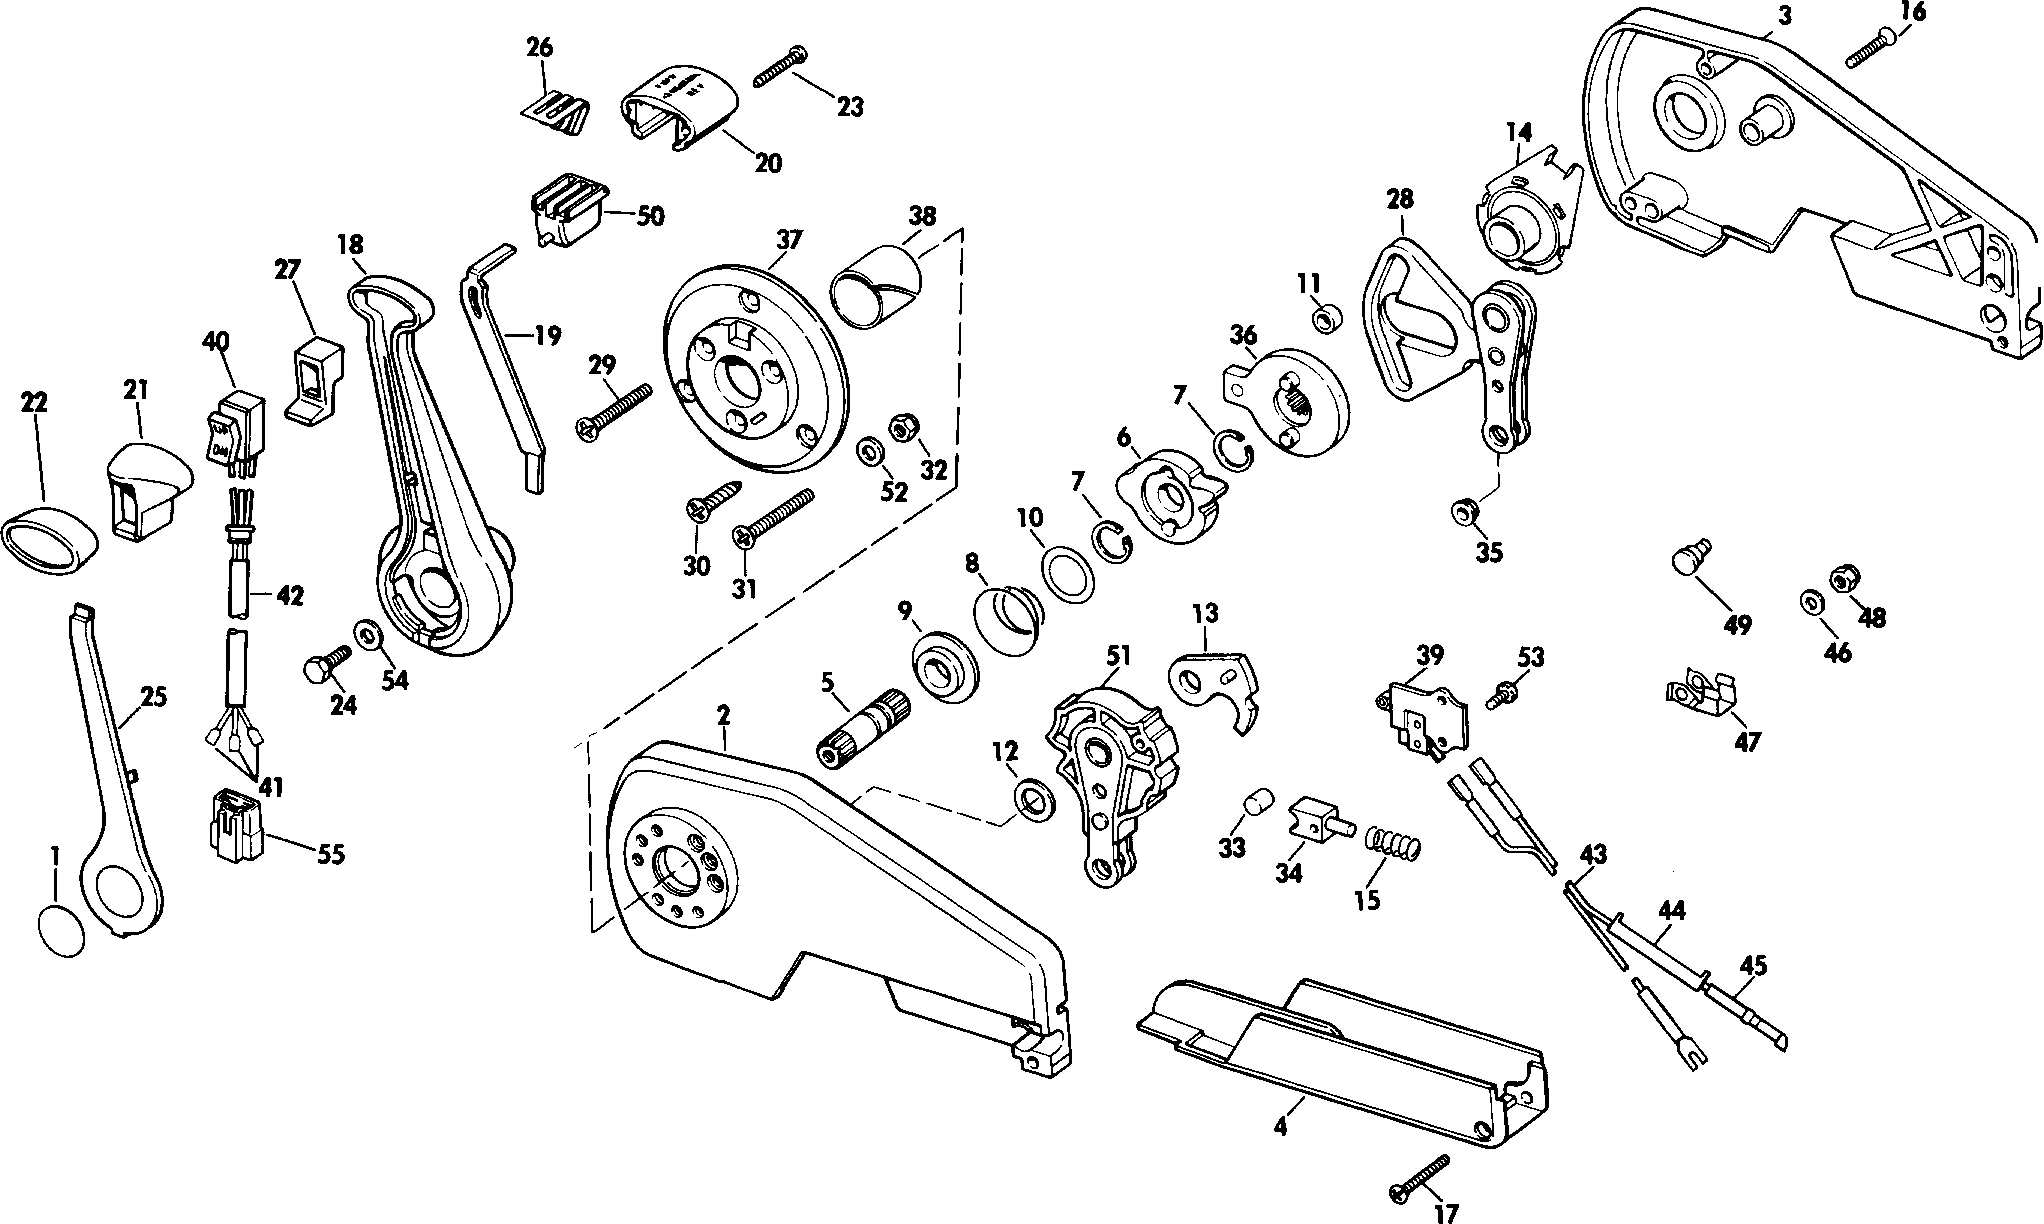 Remote Control Assembly